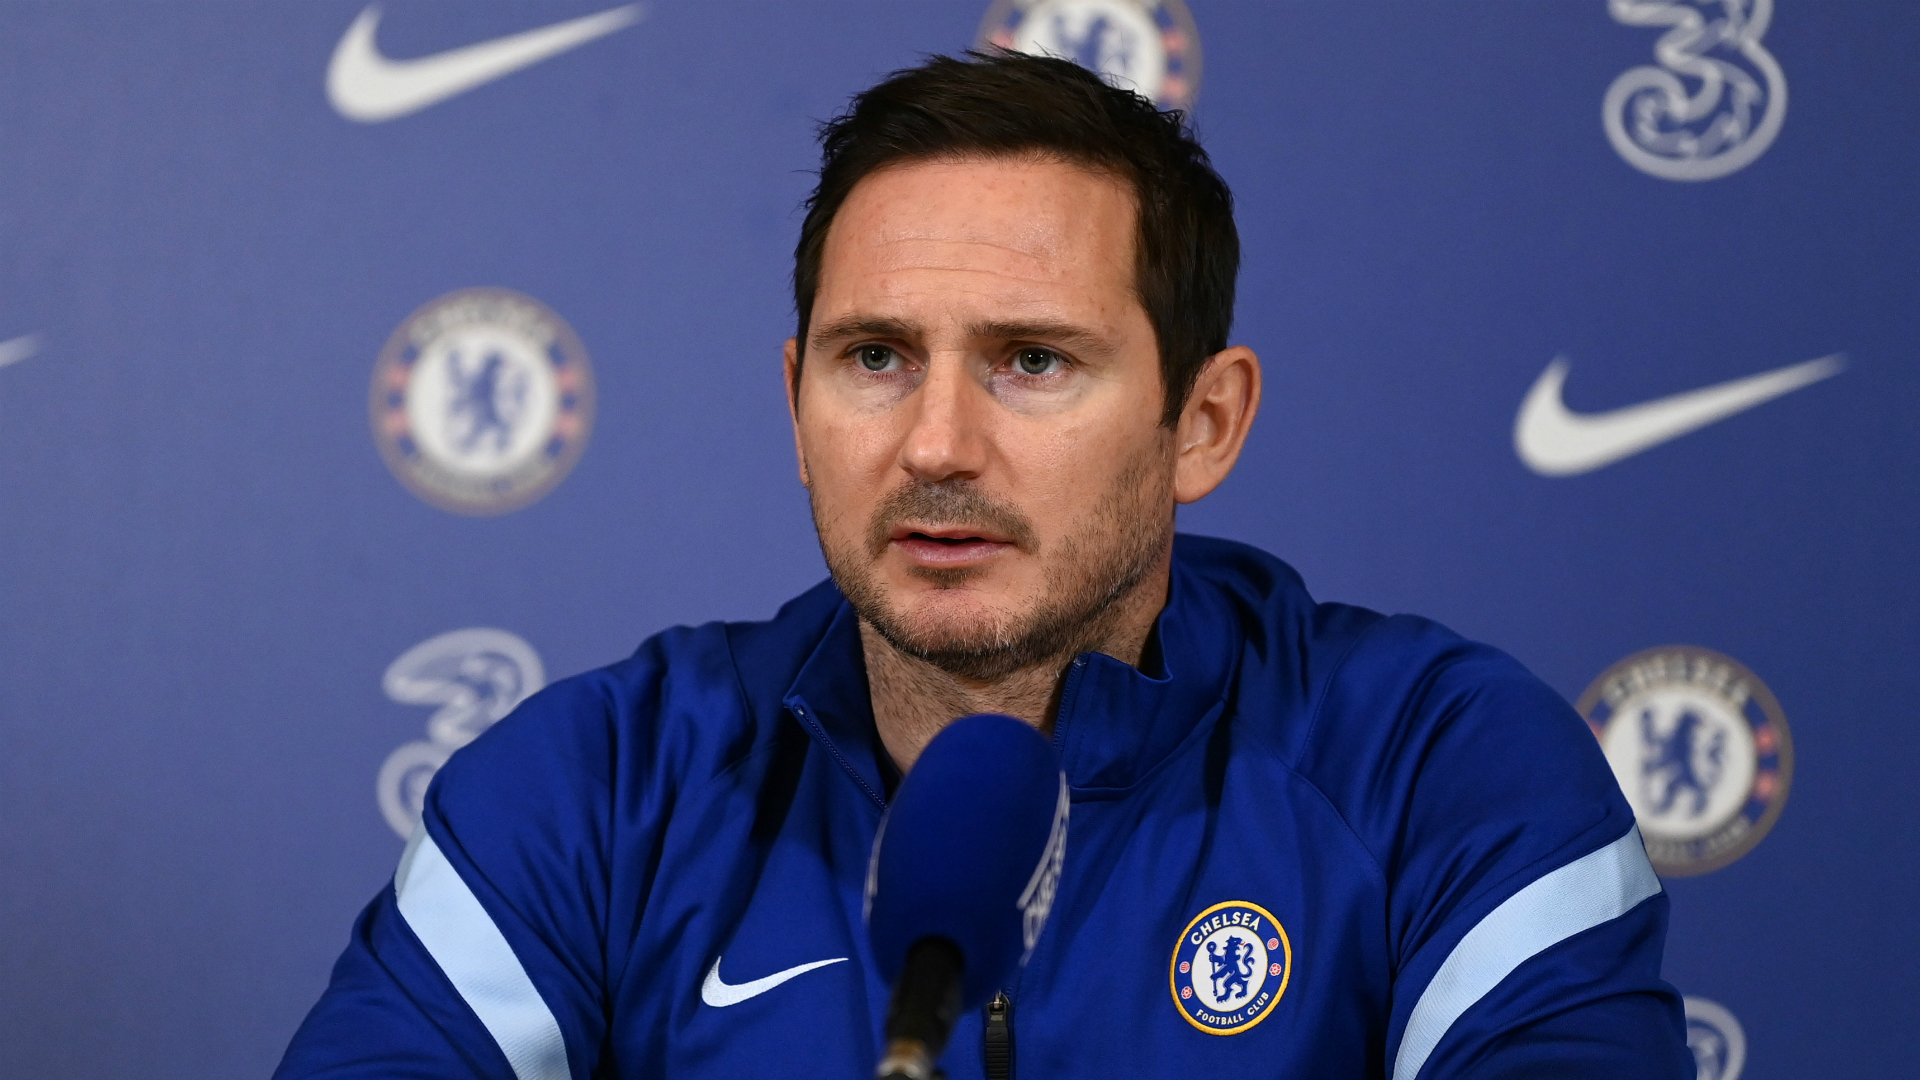 Lampard 'not completely comfortable' as football carries on amid rising coronavirus cases